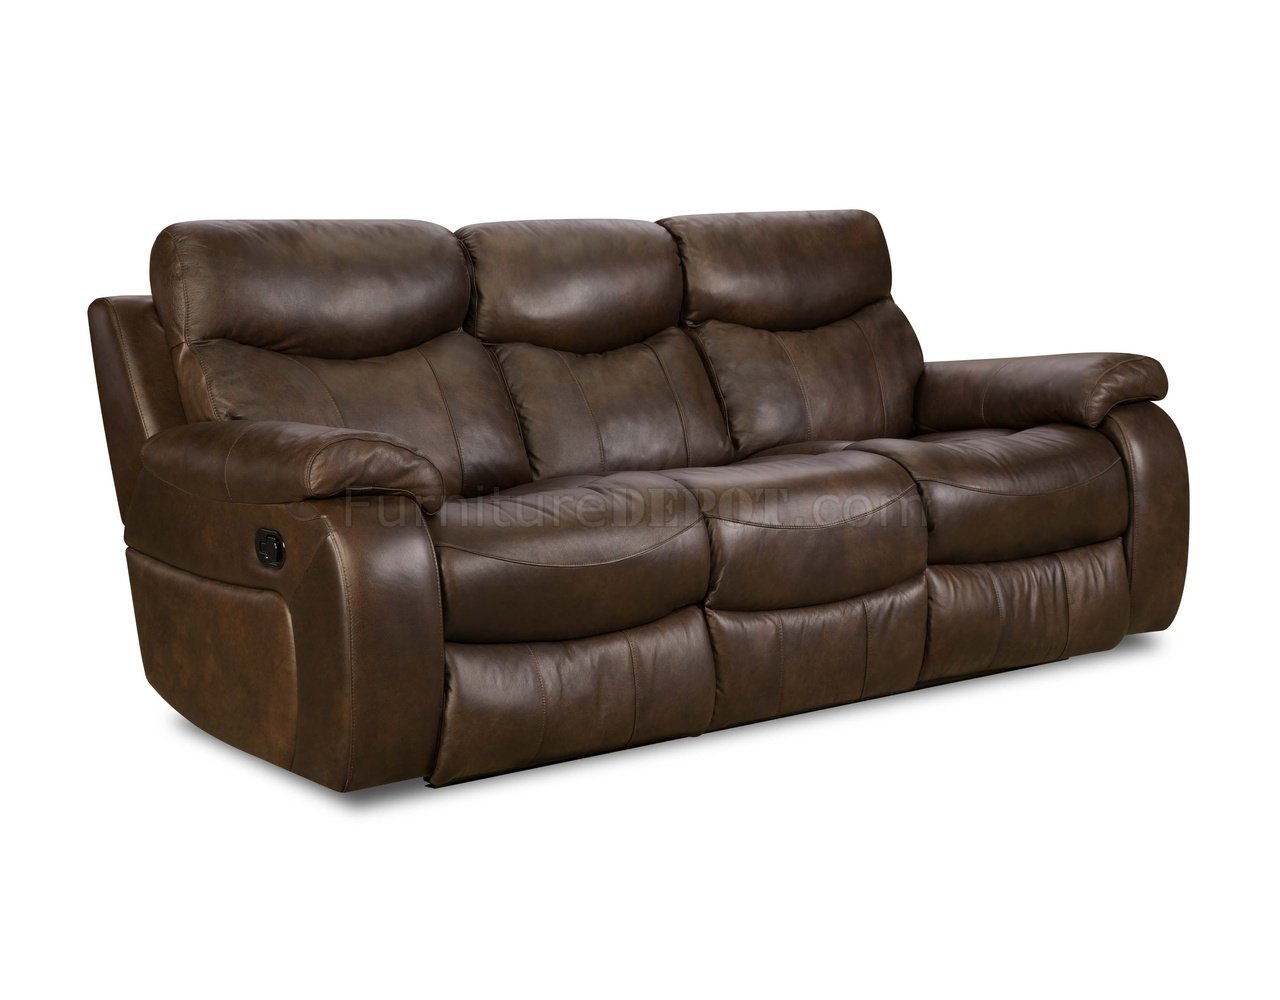 Brown Top Grain Premium Leather Modern Reclining Sofa W Options